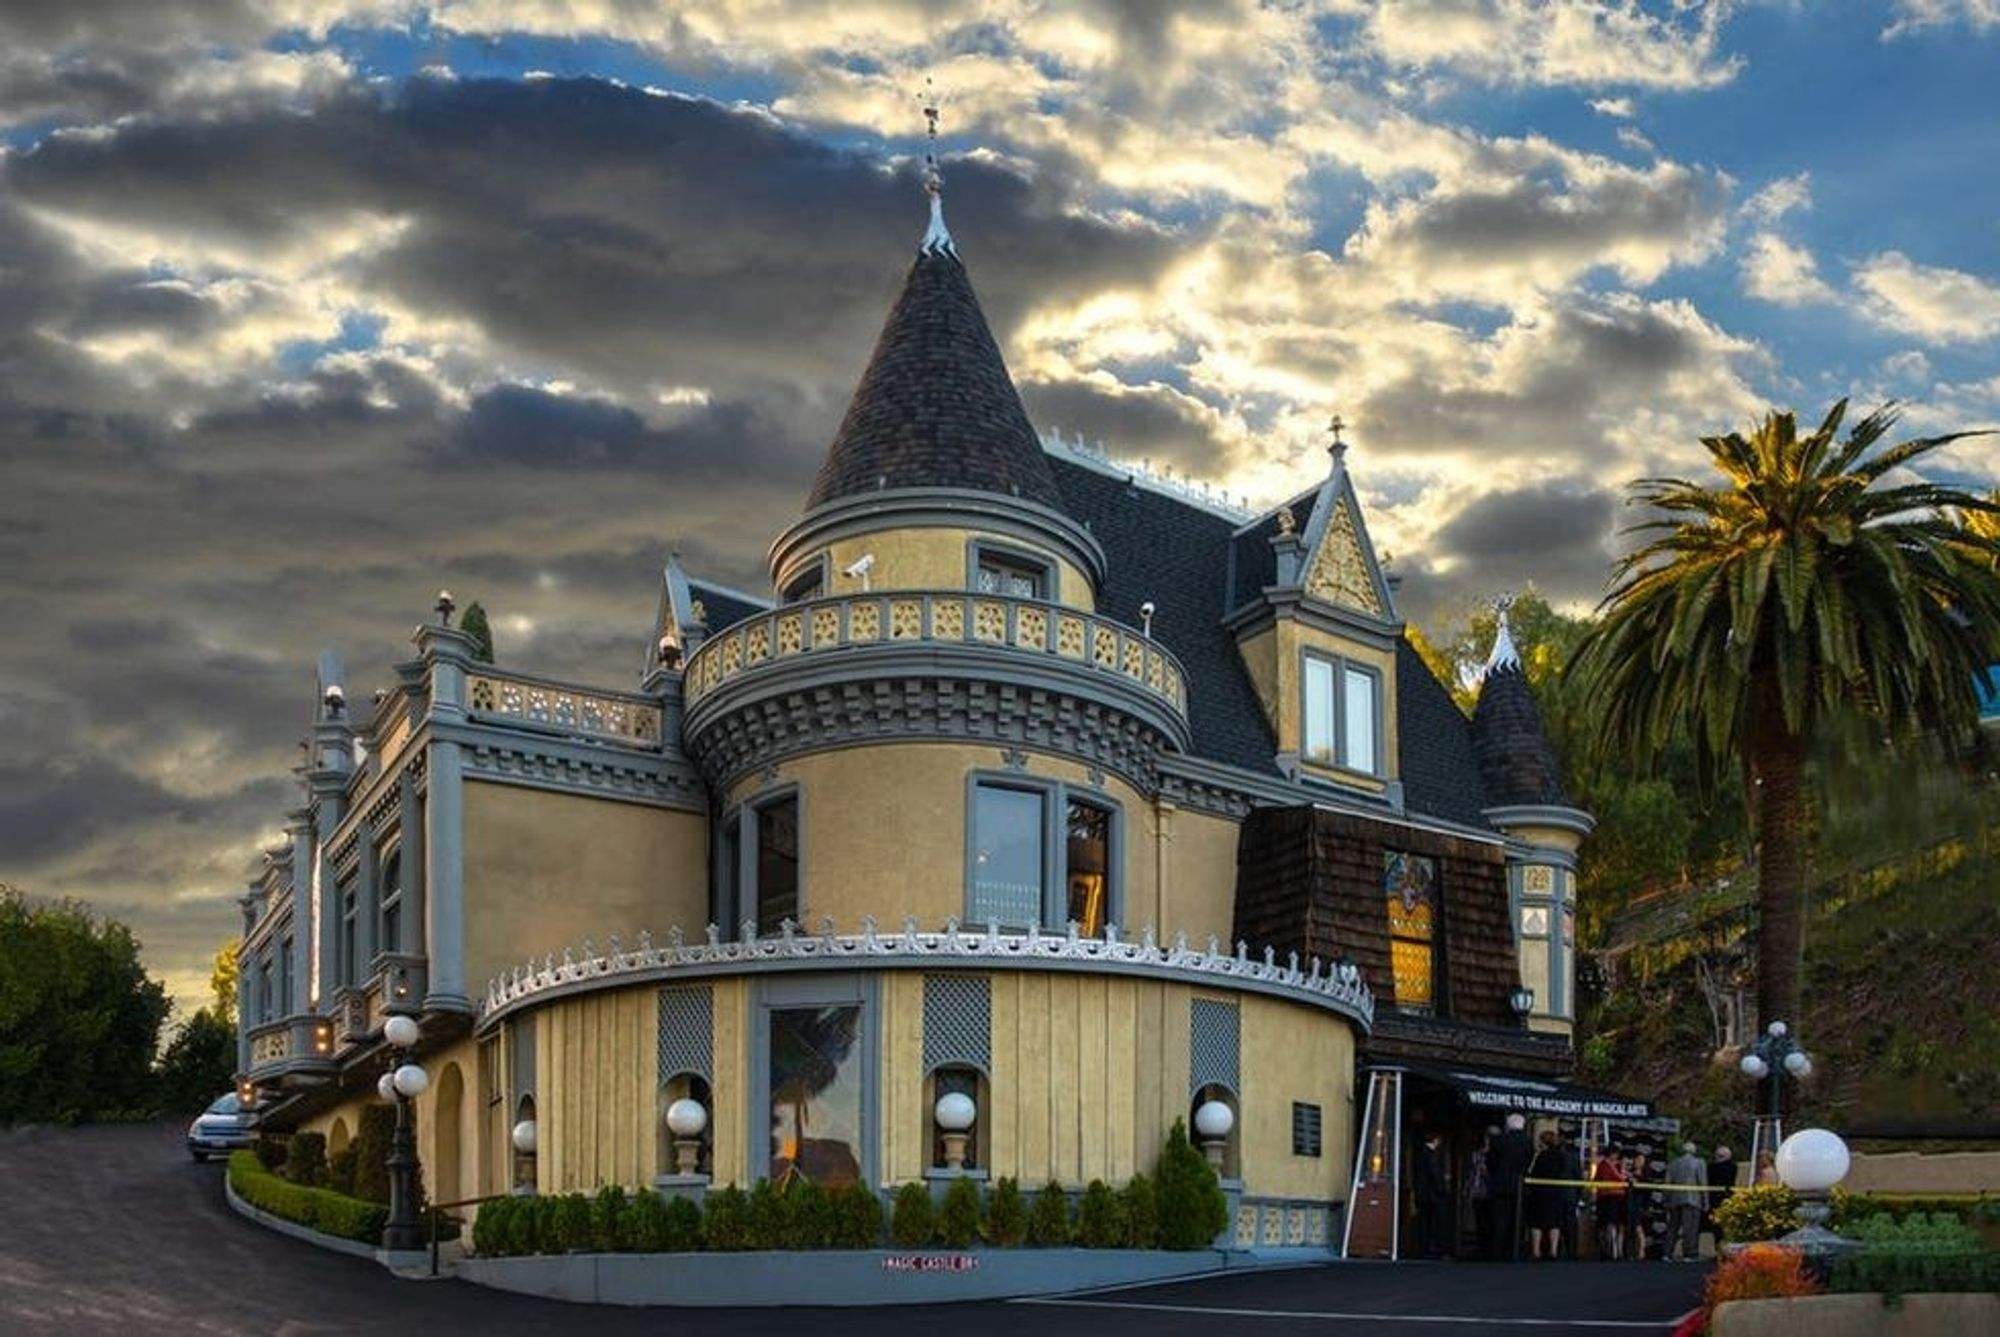 You Can Now Visit the Magic Castle in L.A. Thanks to This Cool Trick